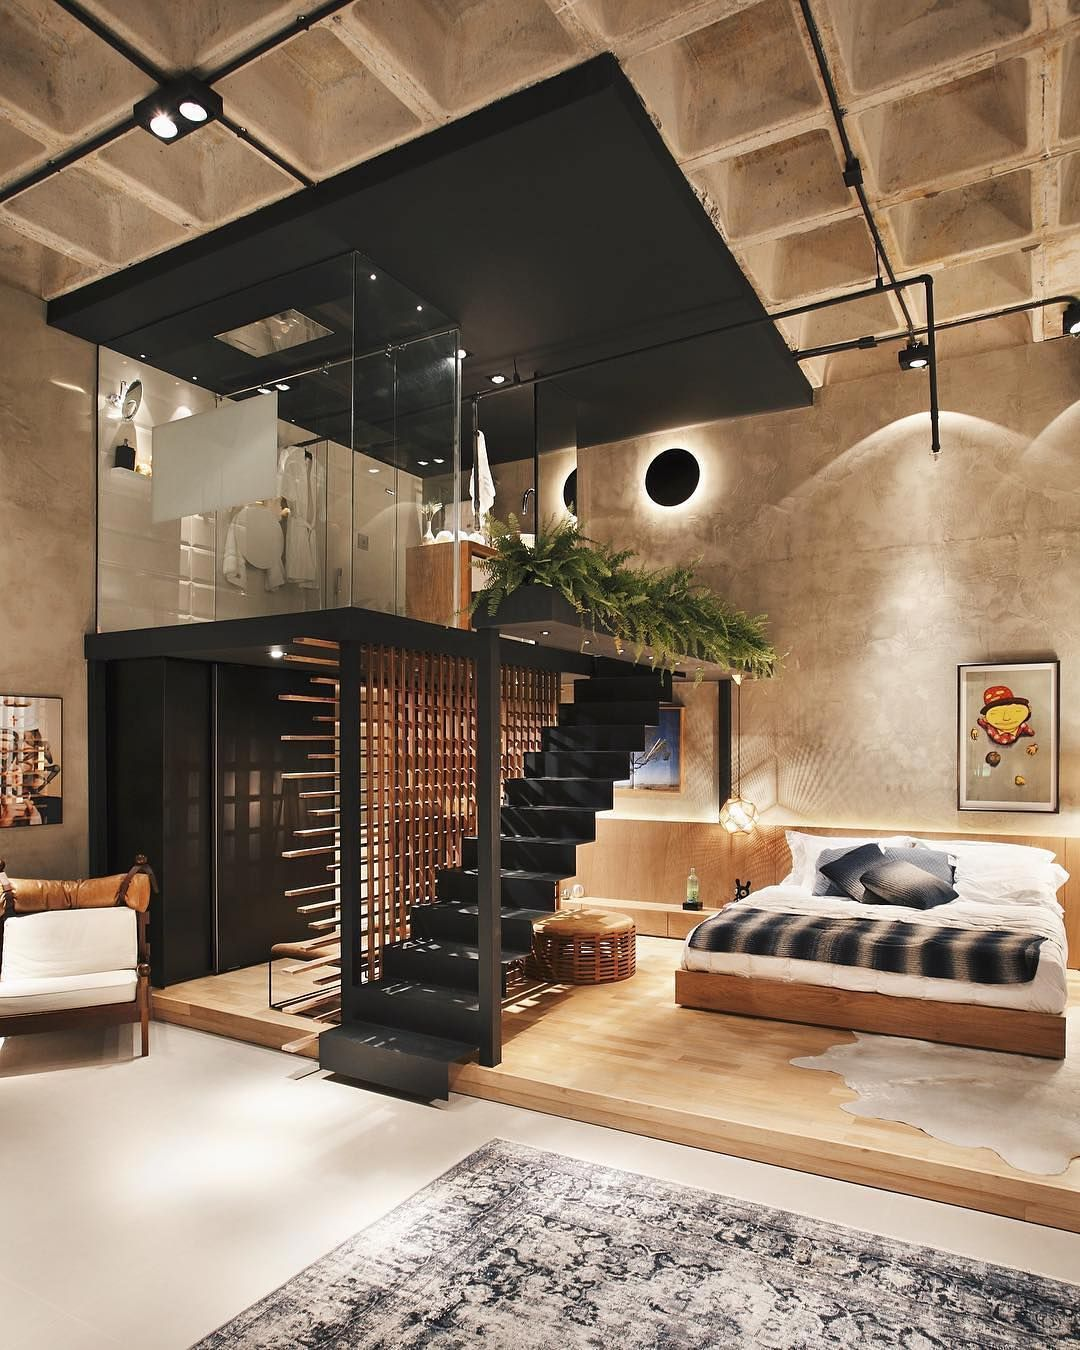 Loft Apartment Living Room Ideas: Modern Loft Living Room Ideas Industrial Loft Living Room